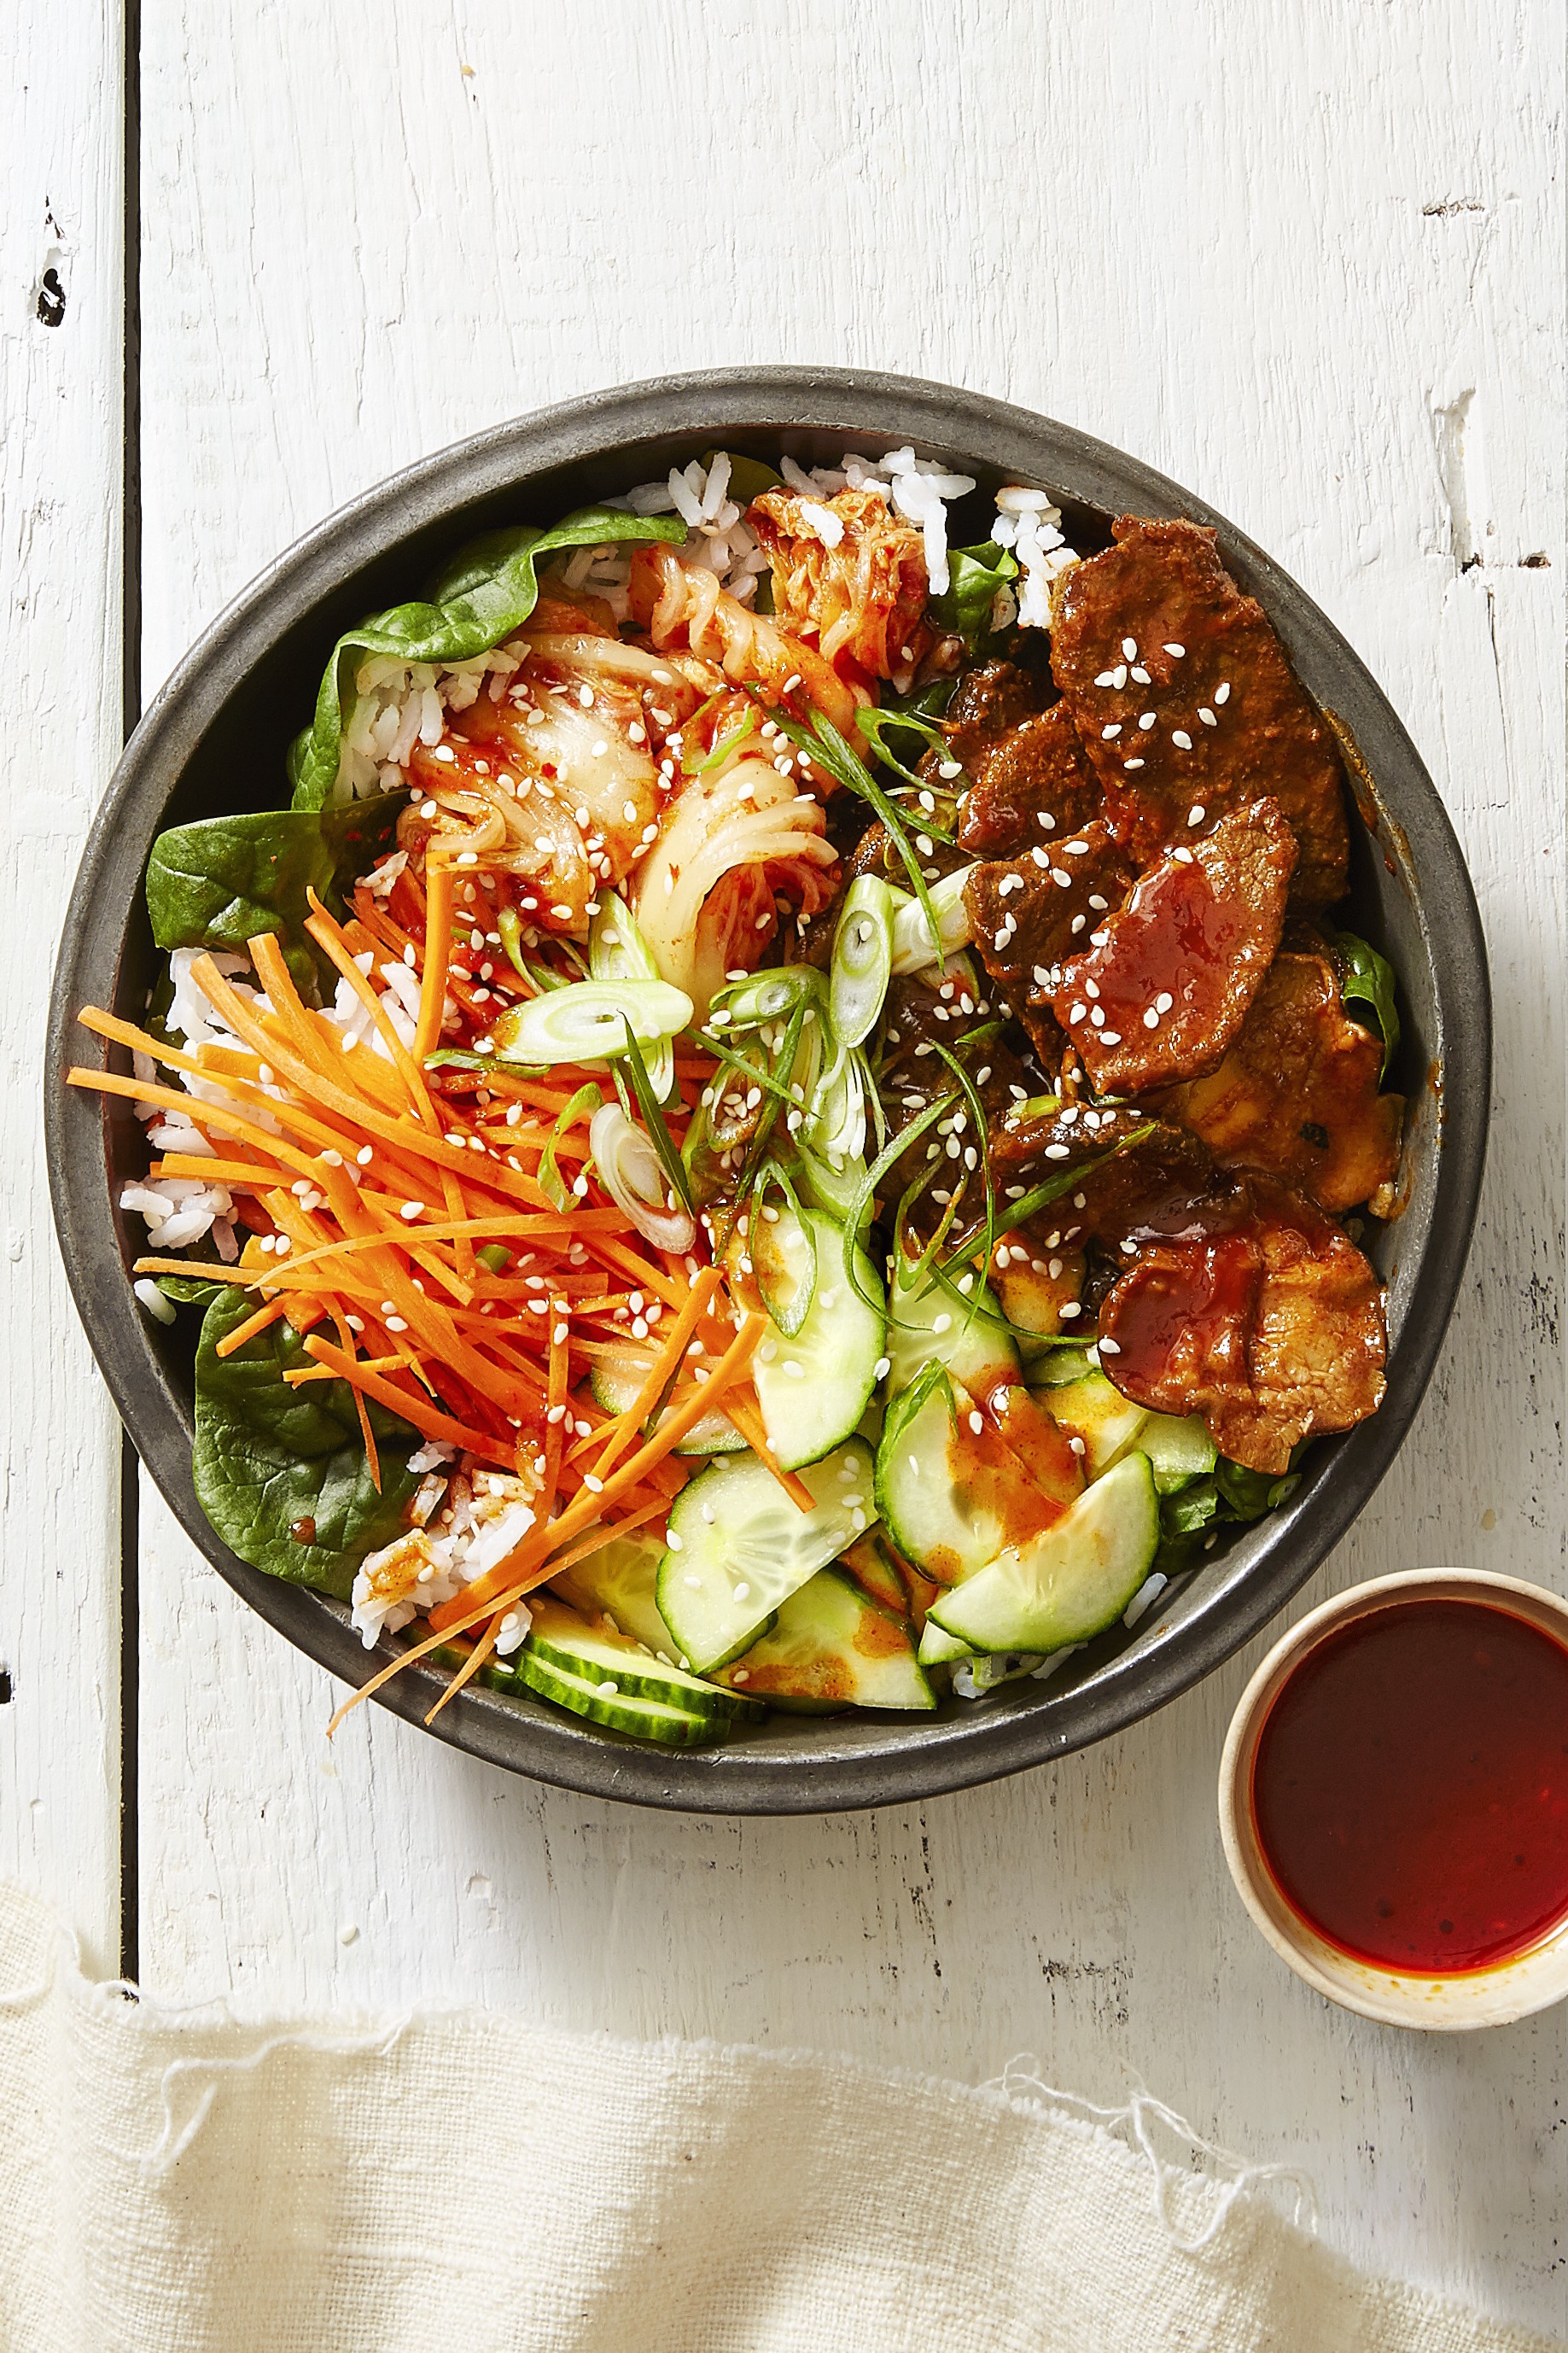 Target Salad Bowl 25 Easy Rice Bowl Recipes How To Make Healthy Rice Bowls